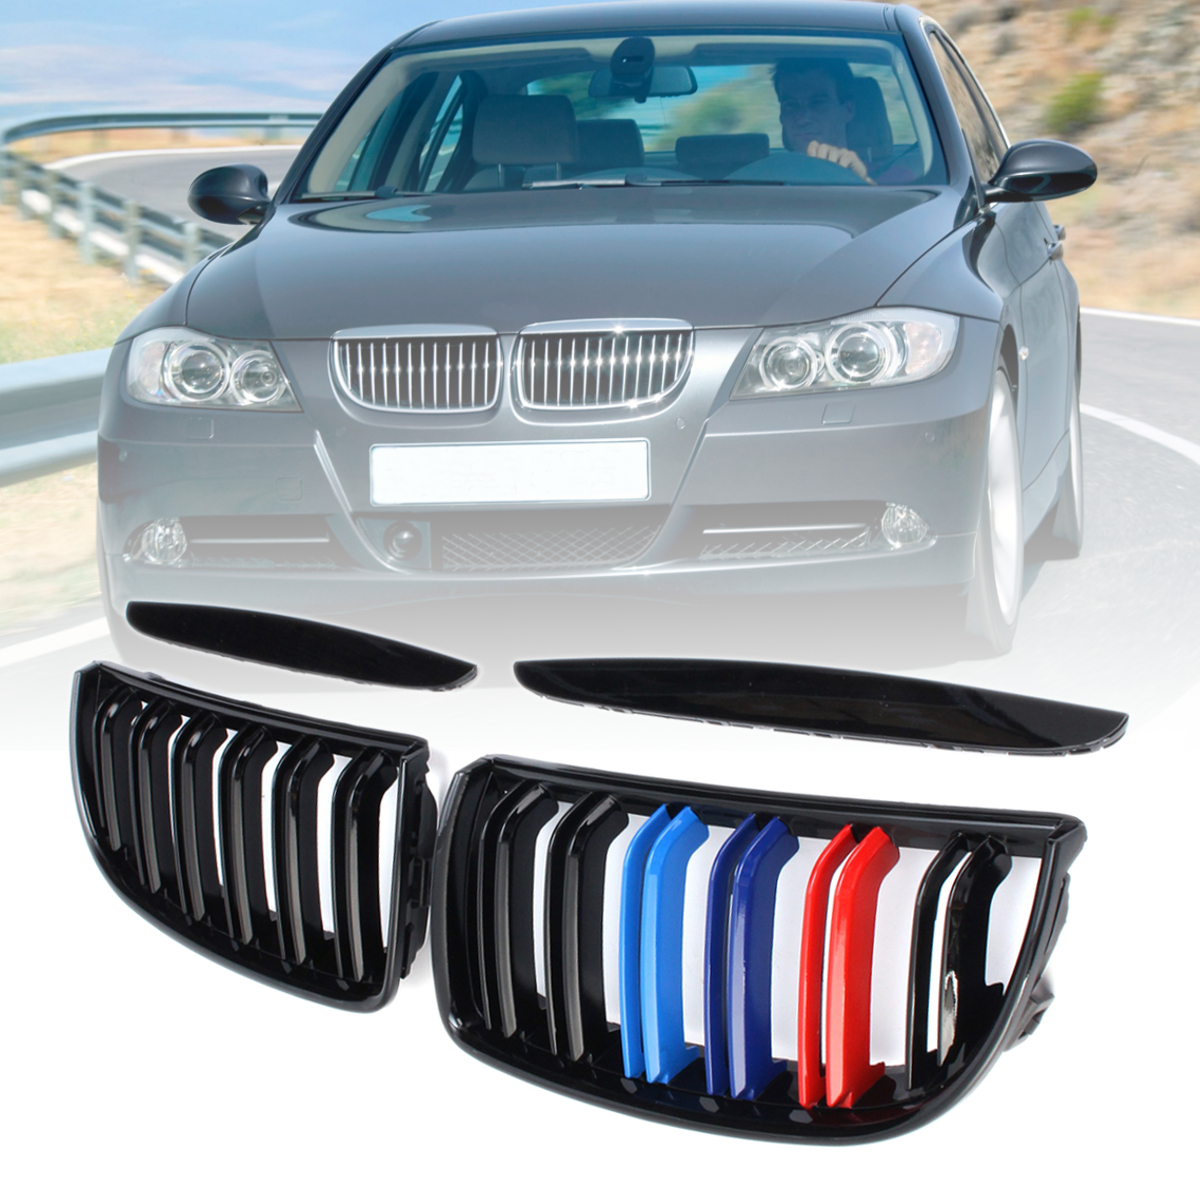 For BMW E90 E91 3 Series 2004 2005 2006 2007 1 Pair Gloss Matt Black M Color 2 Slat Line Front Kidney Grille Grill Double Slat pair gloss matt black m color 2 line front kidney grille grill double slat for bmw e90 e91 3 series 2004 2005 2006 2007